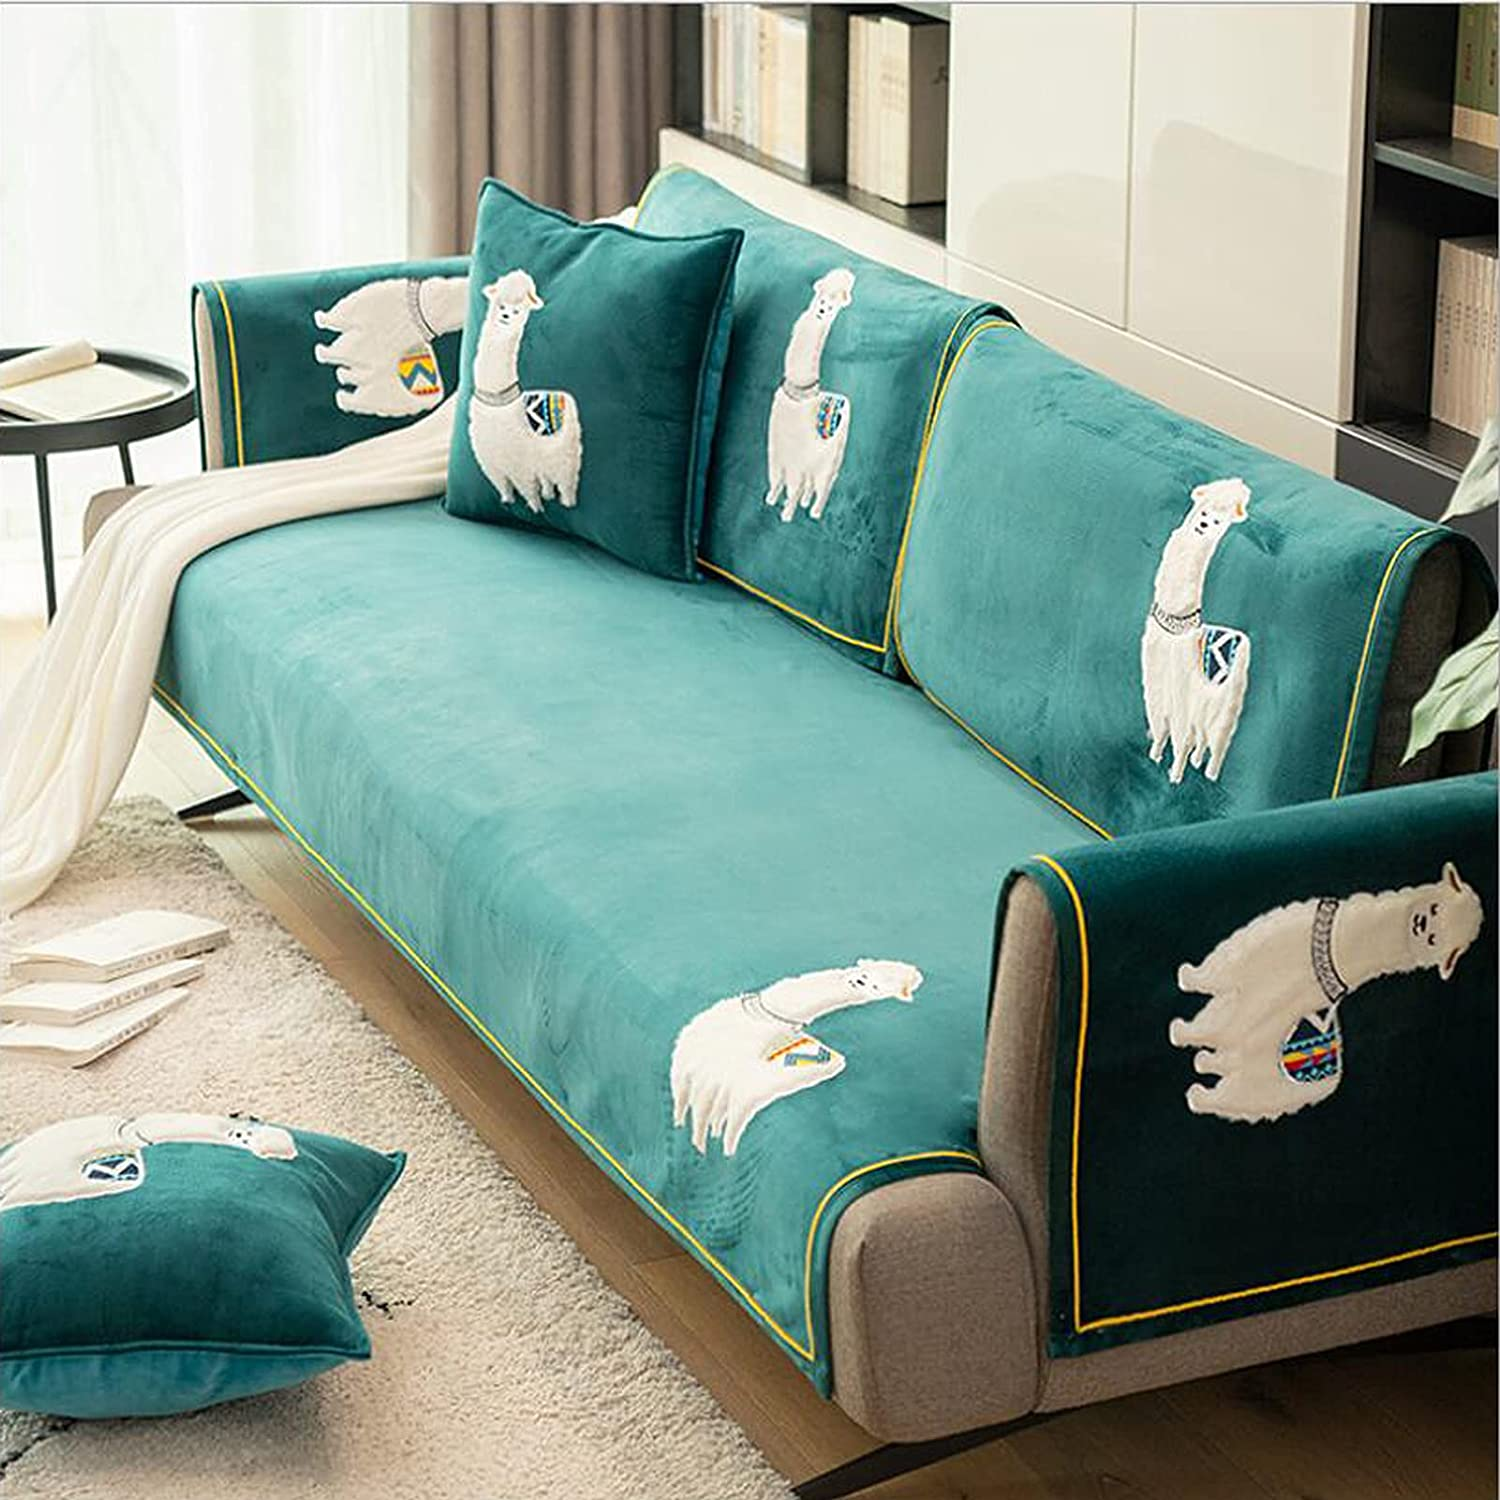 AESHW Family Version Waterproof Sofa Thick So Printed Fashion In a popularity Extra Set